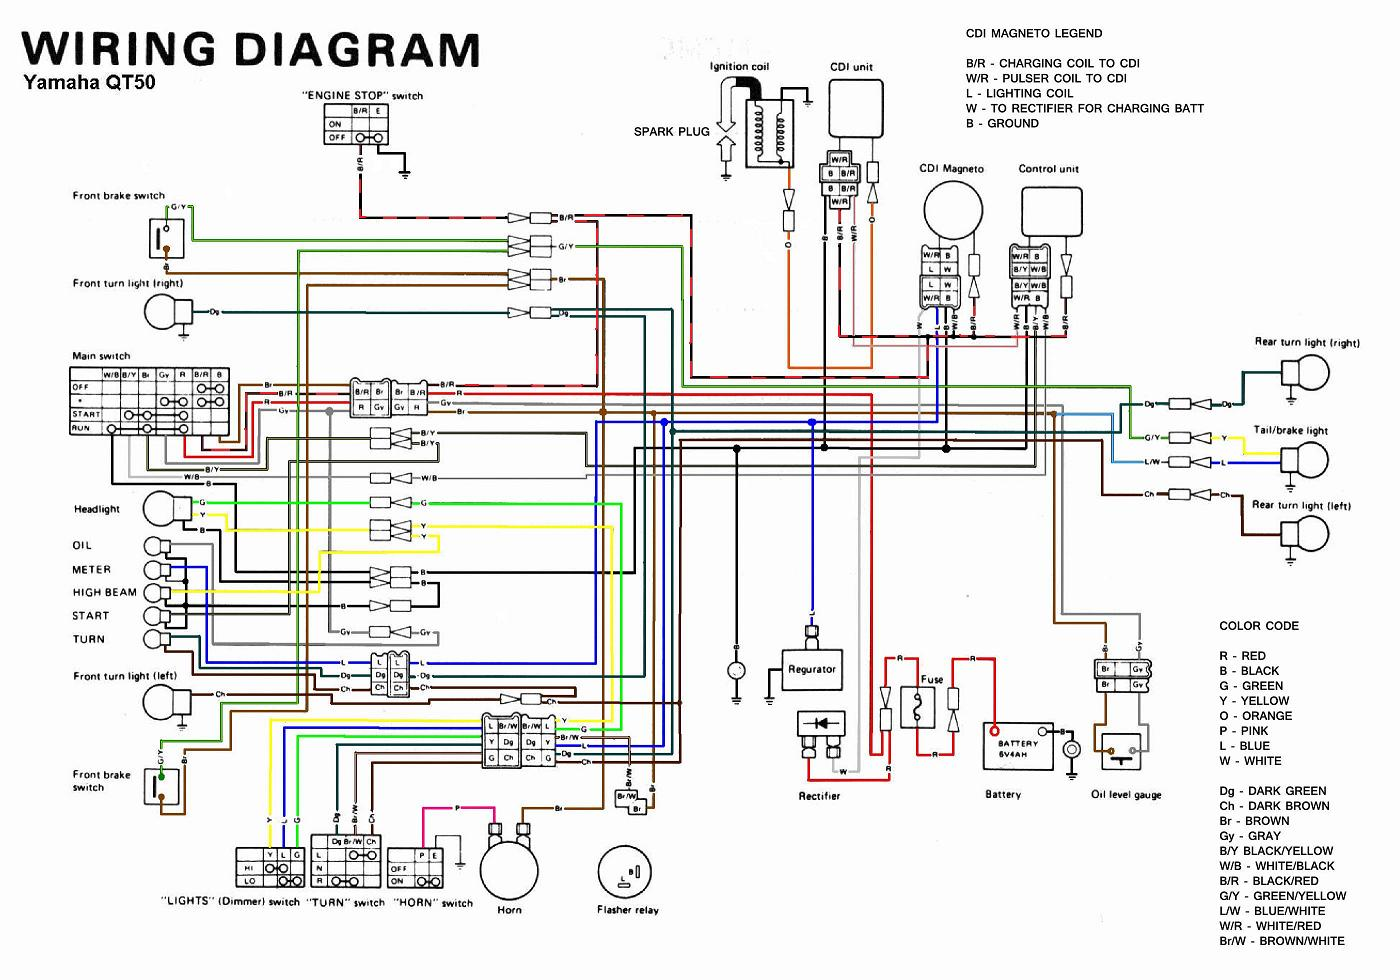 bmw r wiring diagram motorcycle kill switch wiring diagram images wiring alarm diagram motorcycle kill switch wiring diagram images wiring